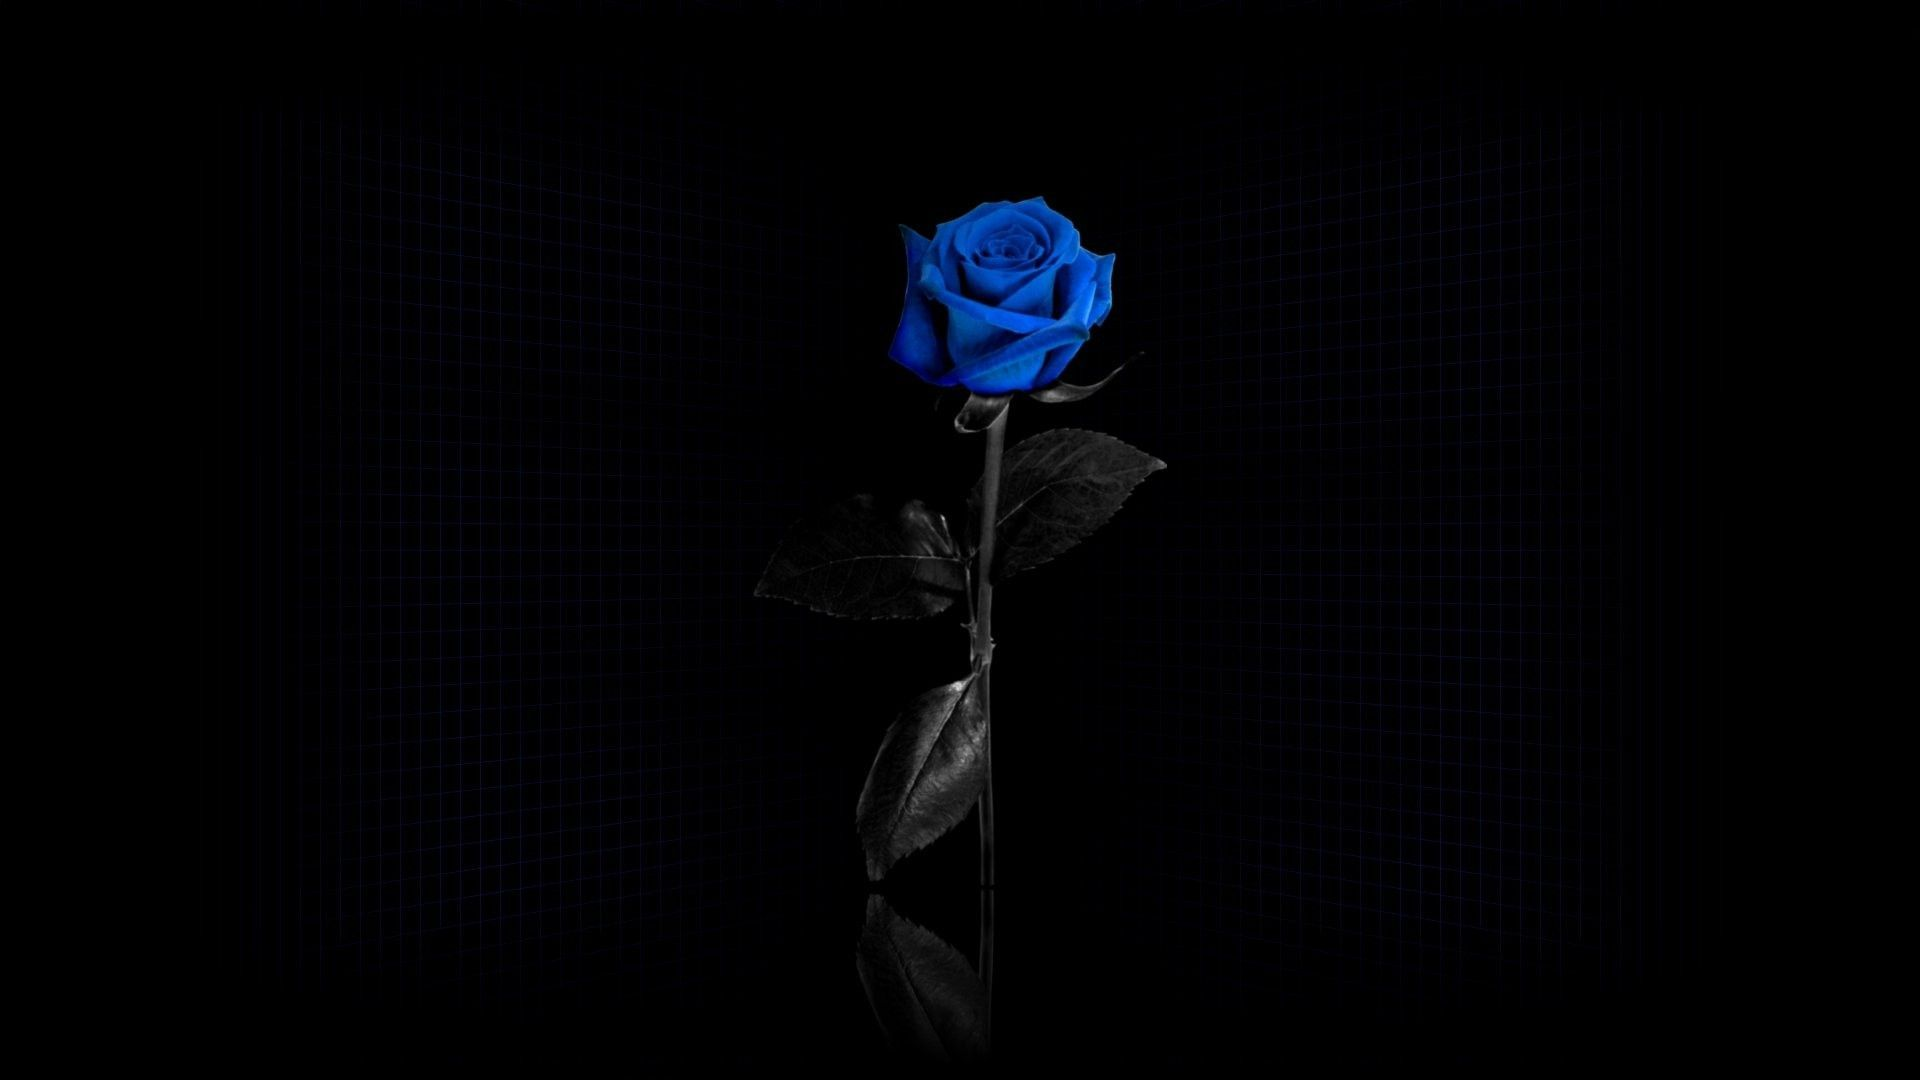 Blue Rose Wallpapers Wallpaper Cave Blue Roses Wallpaper